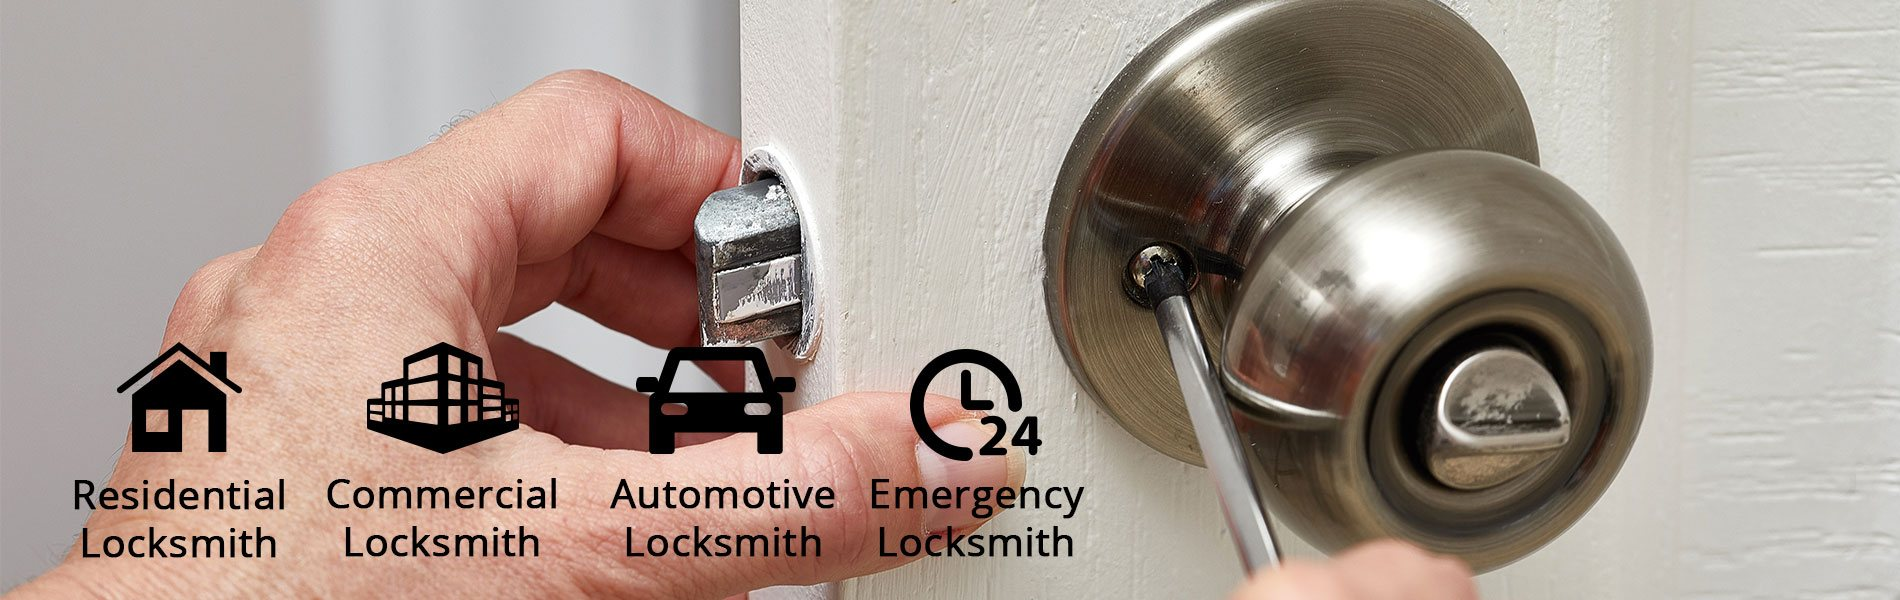 Lock Locksmith Services Orange, CA 714-983-9055